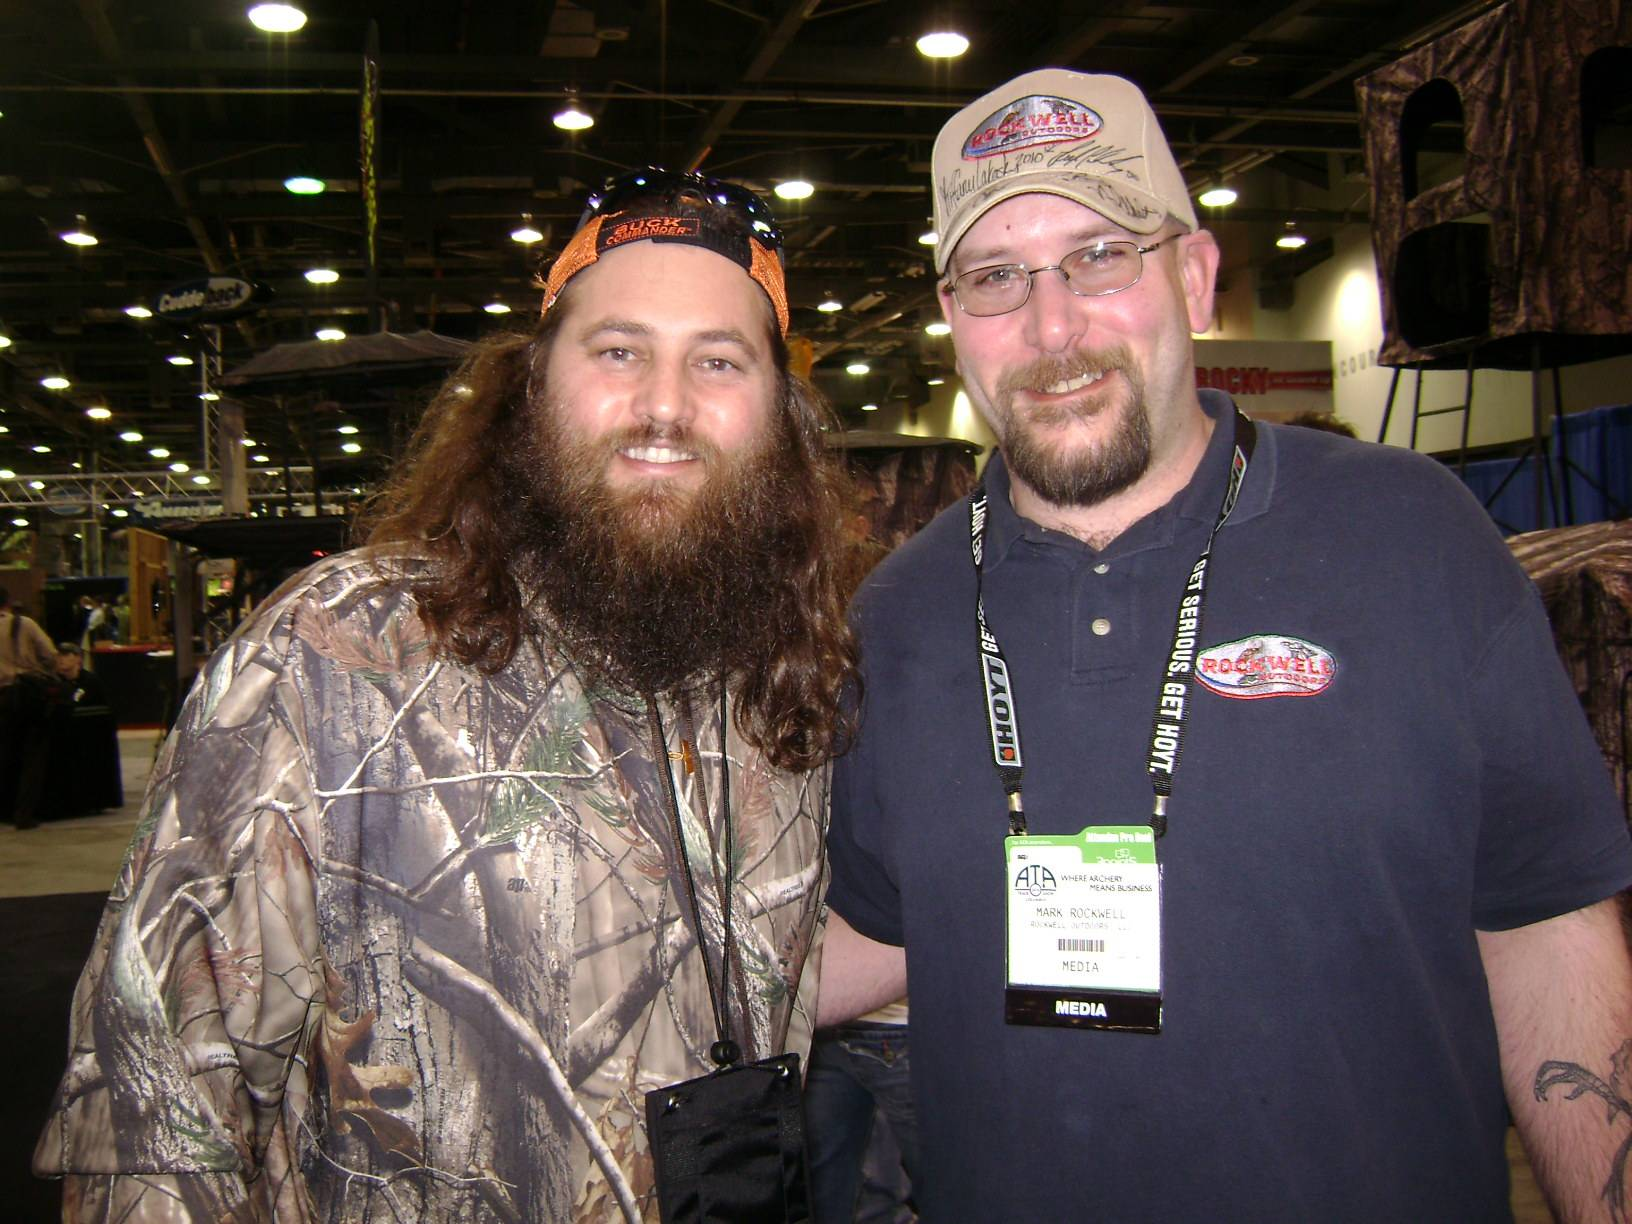 Willie from Duck Commander/Buck Commander with Mark